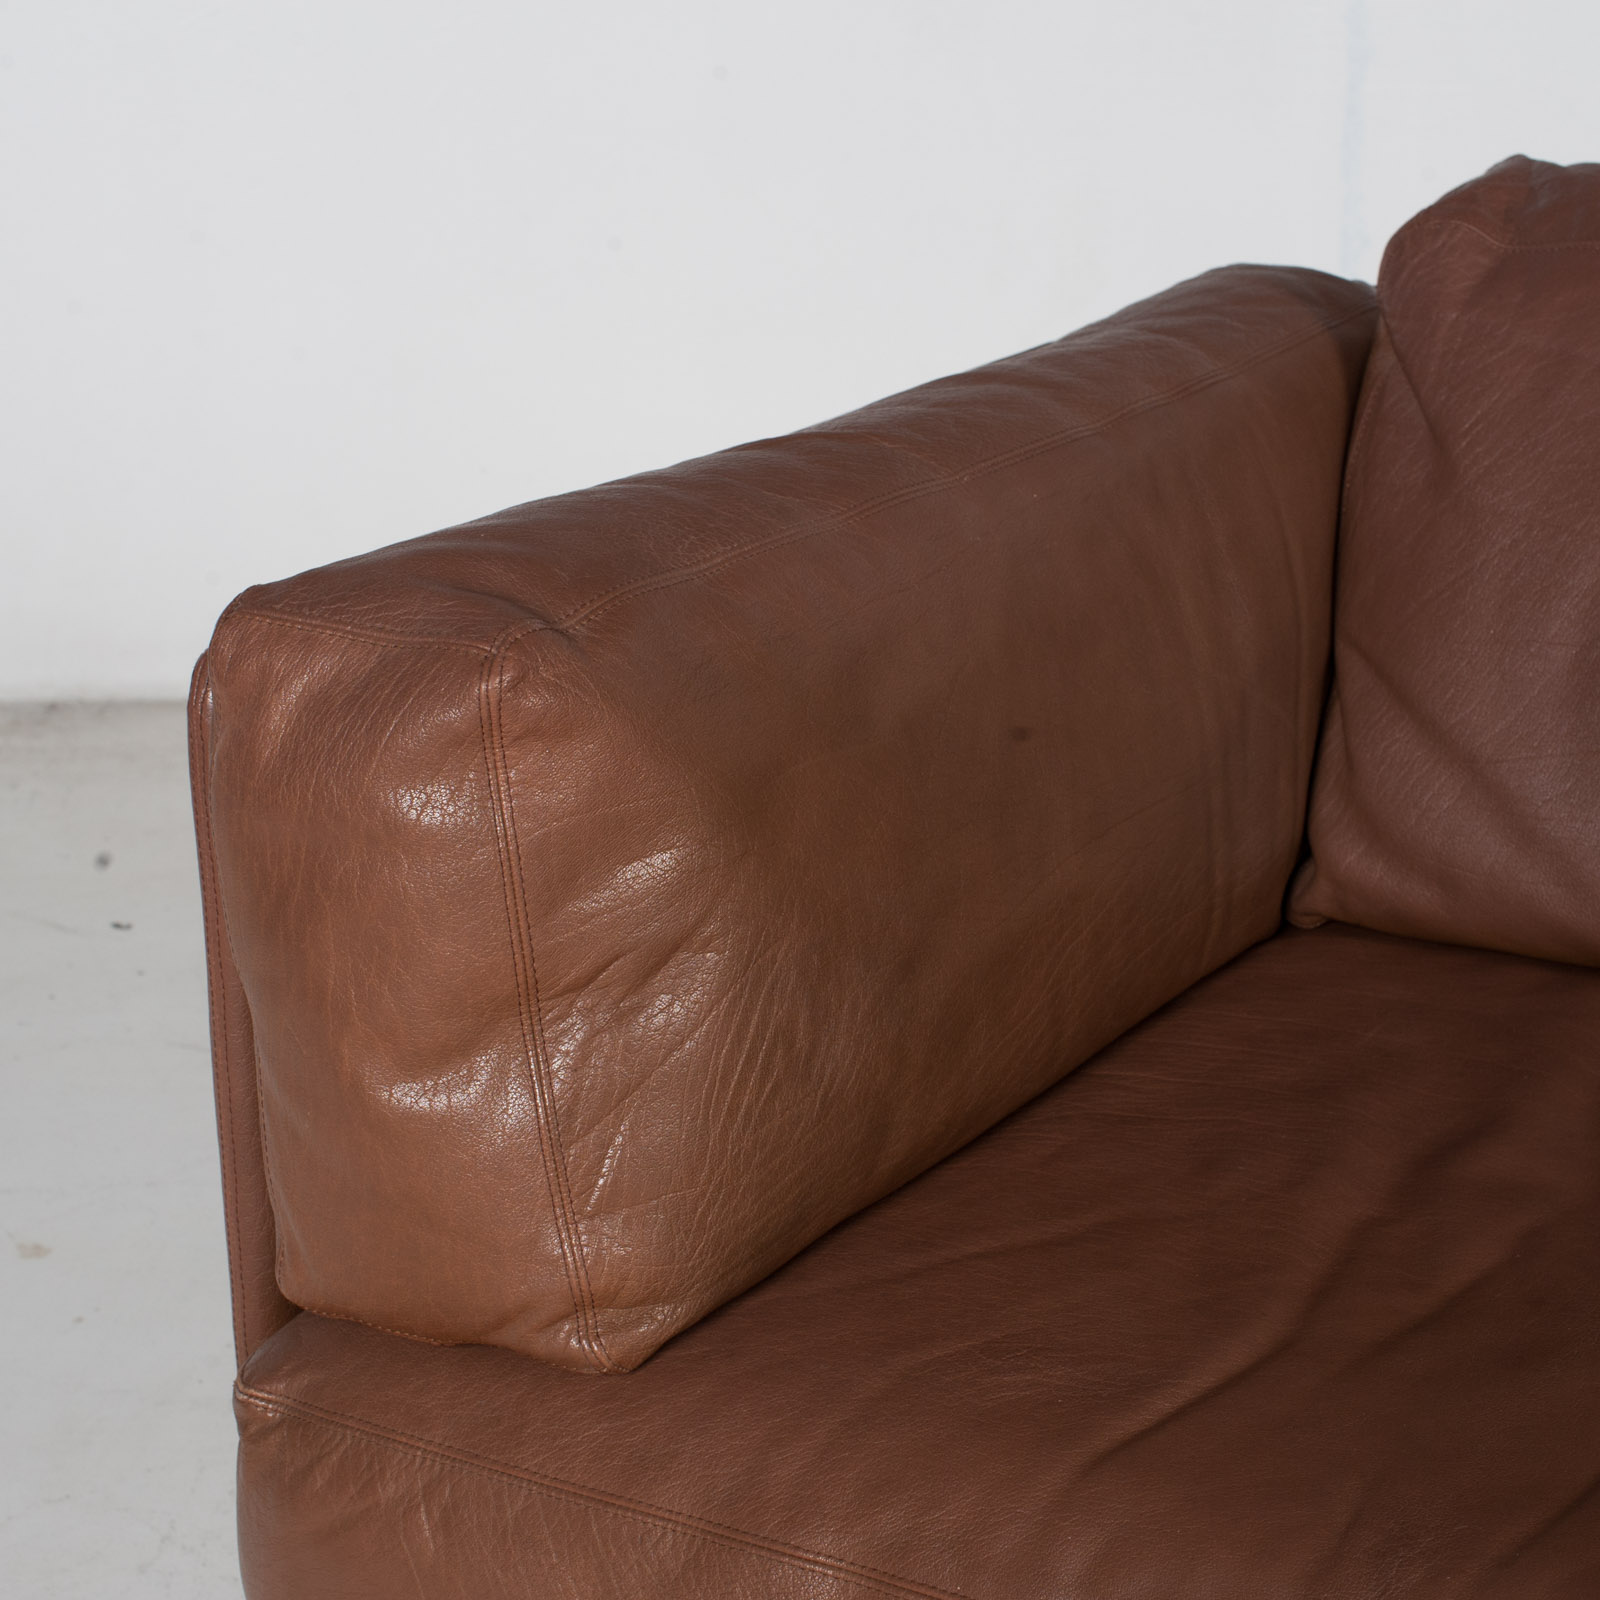 2 Seater Sofa In Brown Leather, 1960s, Switzerland 7